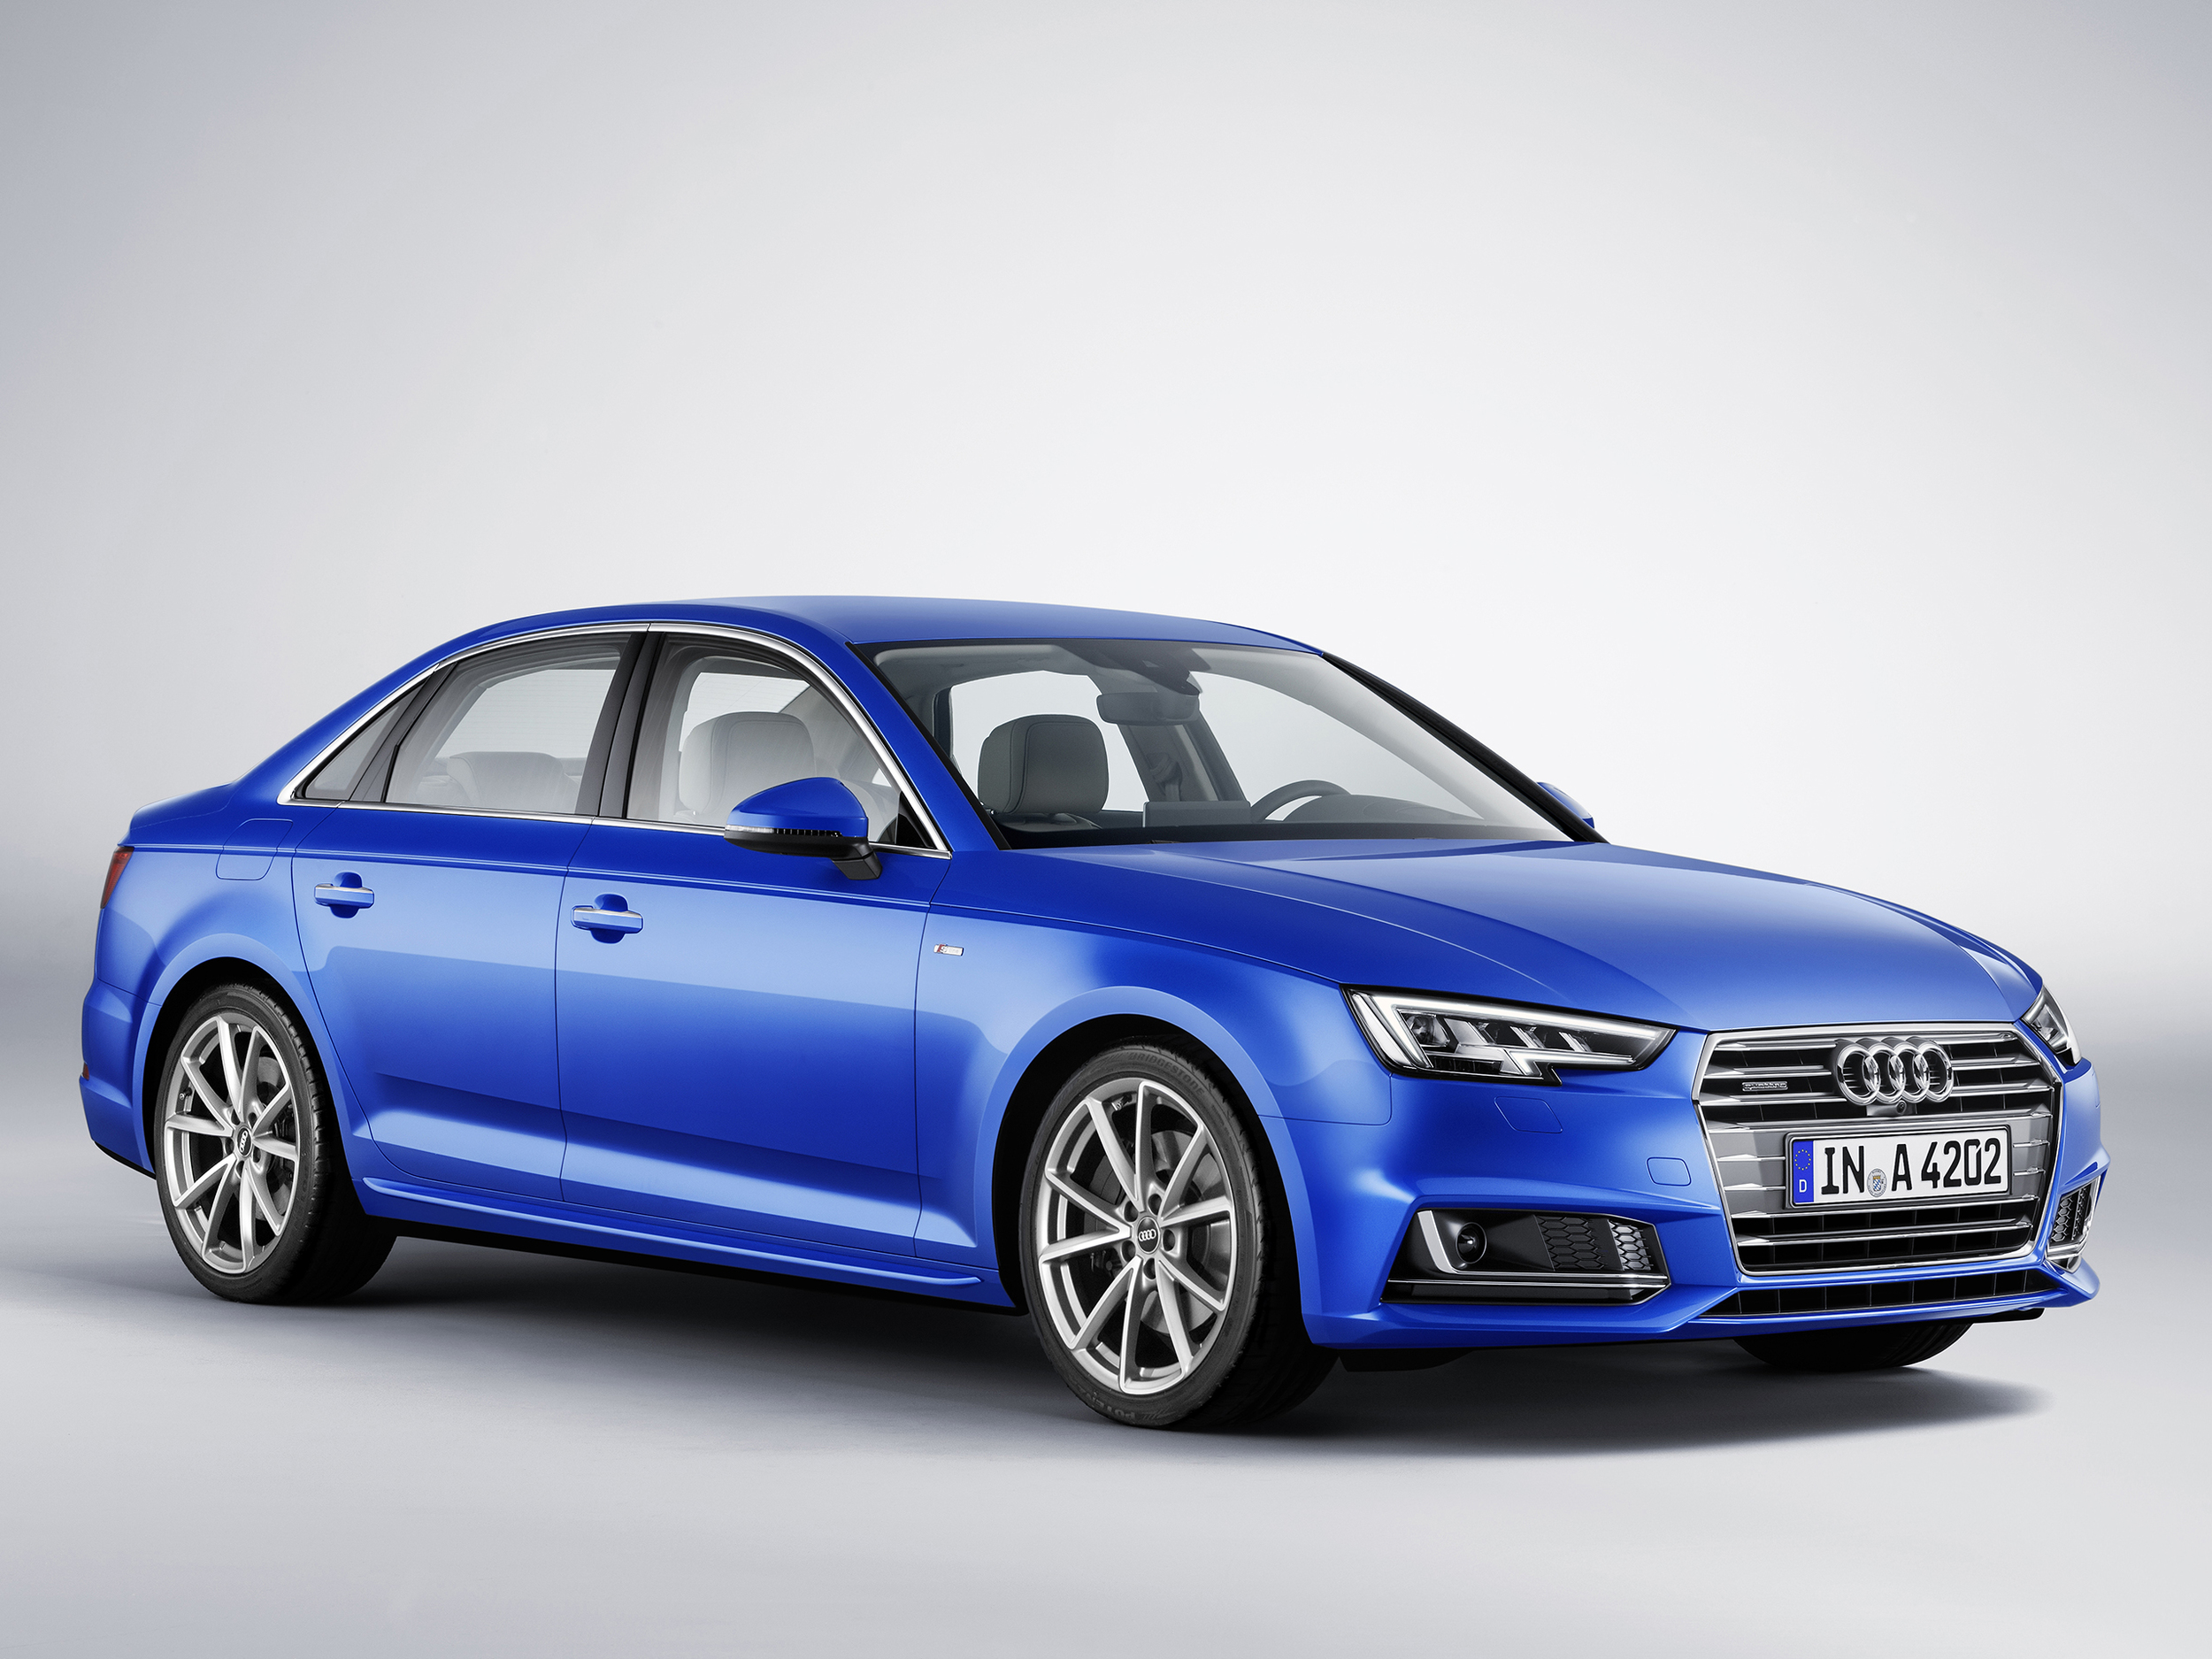 Audi confirms new A4 pricing